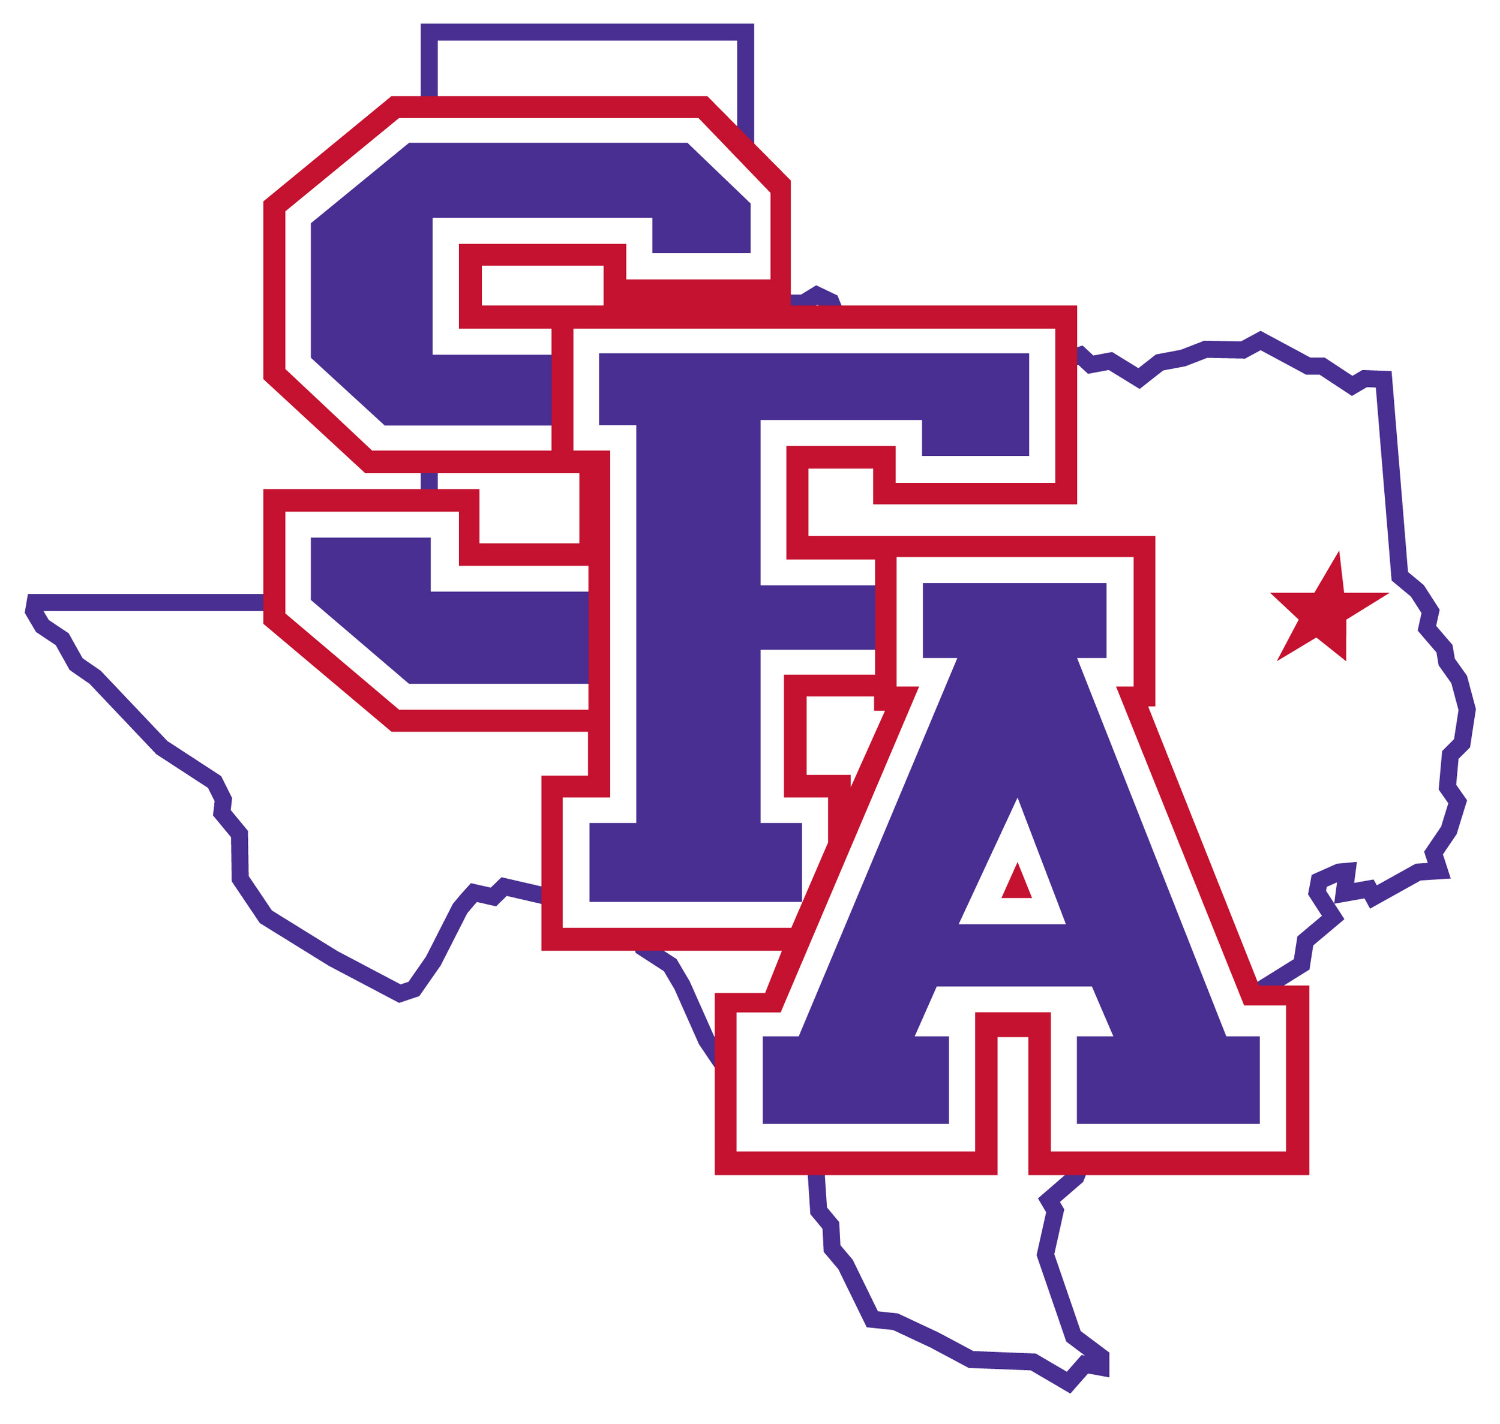 hight resolution of ranked a tier 1 regional university stephen f austin state university sfa is located in nacogdoches the oldest town in texas